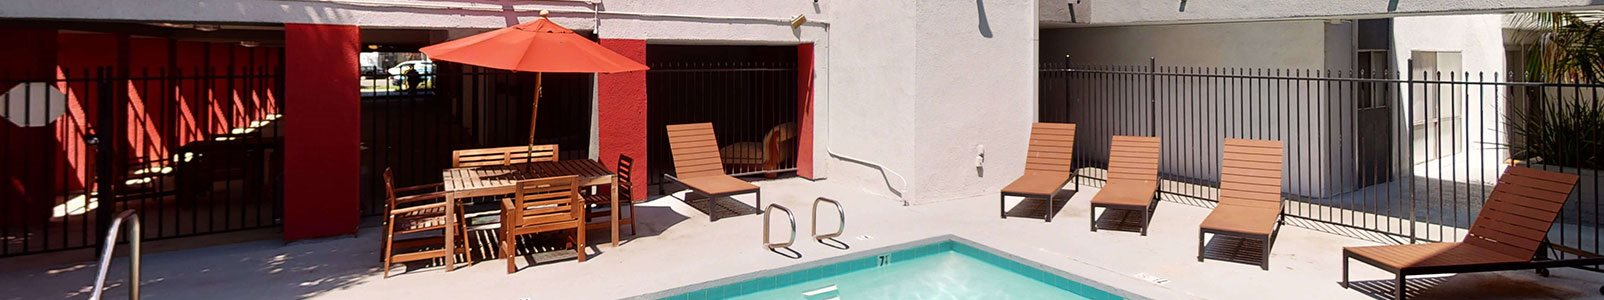 Swimming Pool Area With Shaded Chairs at City Park View, California